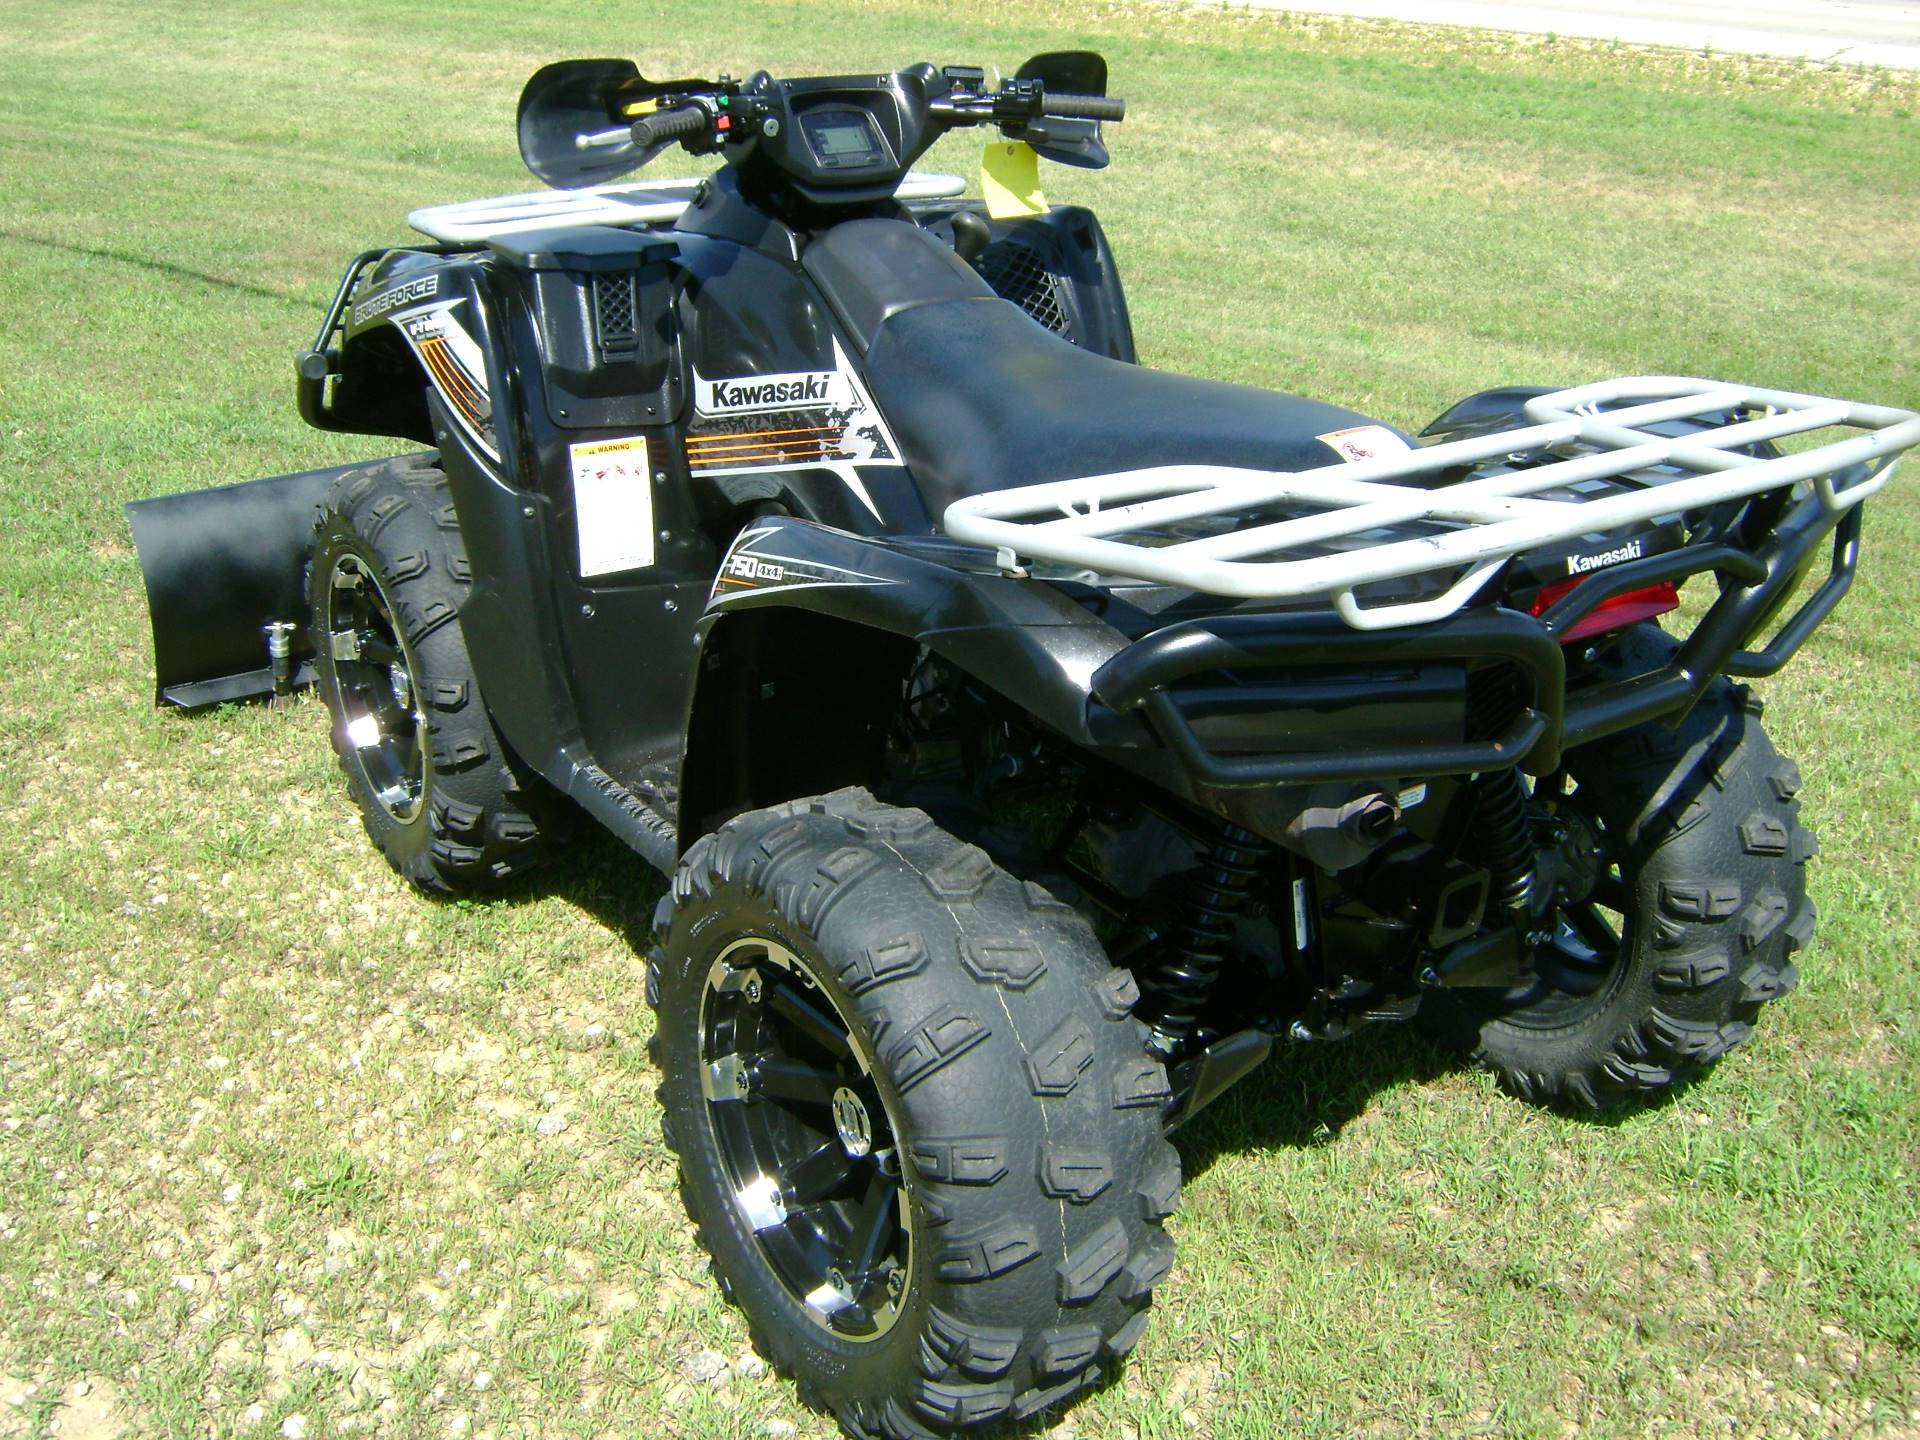 2012 Kawasaki BRUTE FORCE 750 in Freeport, Illinois - Photo 6